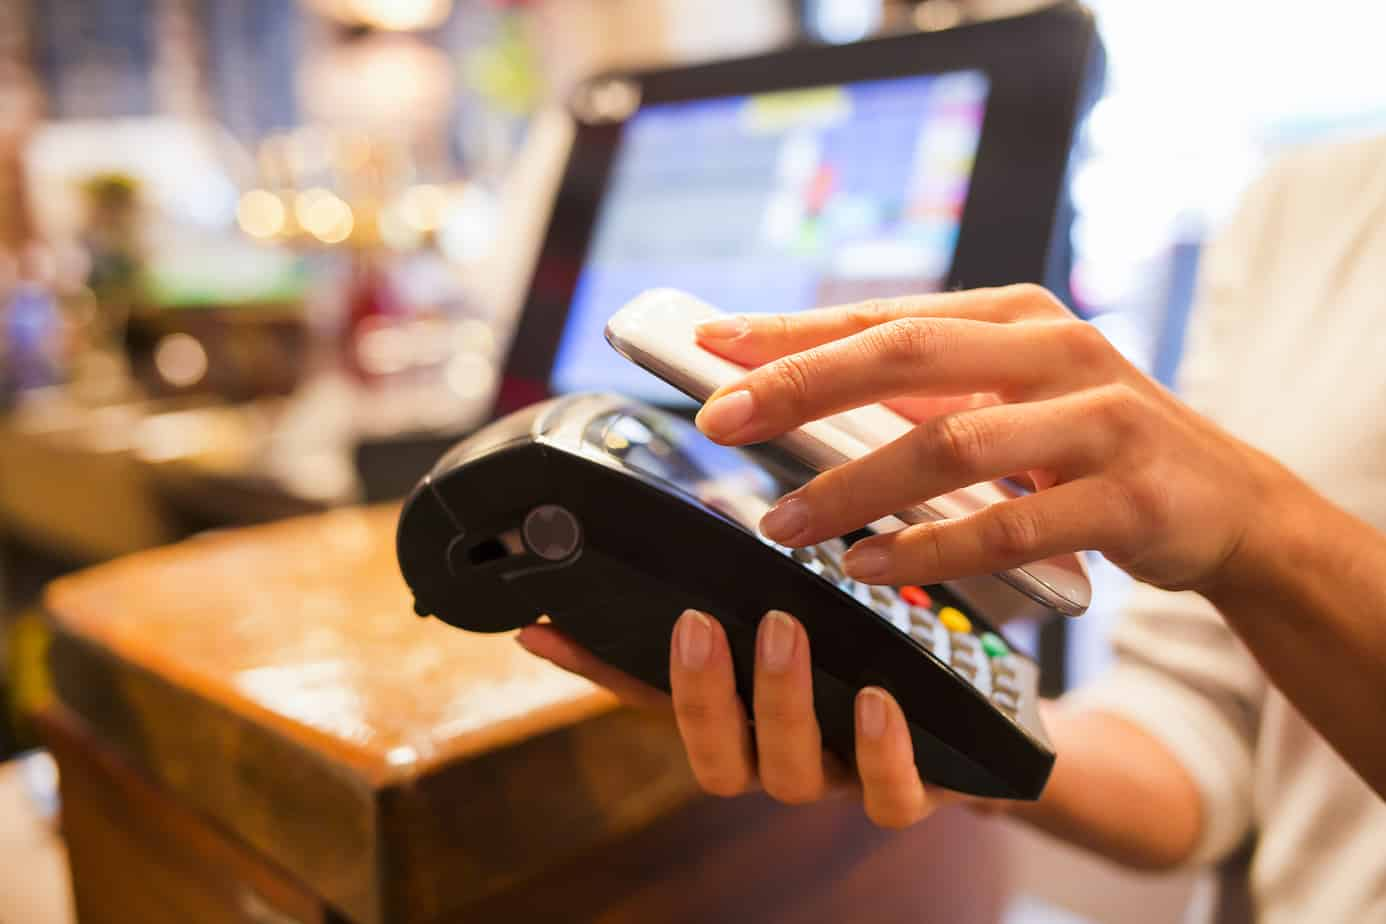 Many customers are using contactless payments with their smartphones.